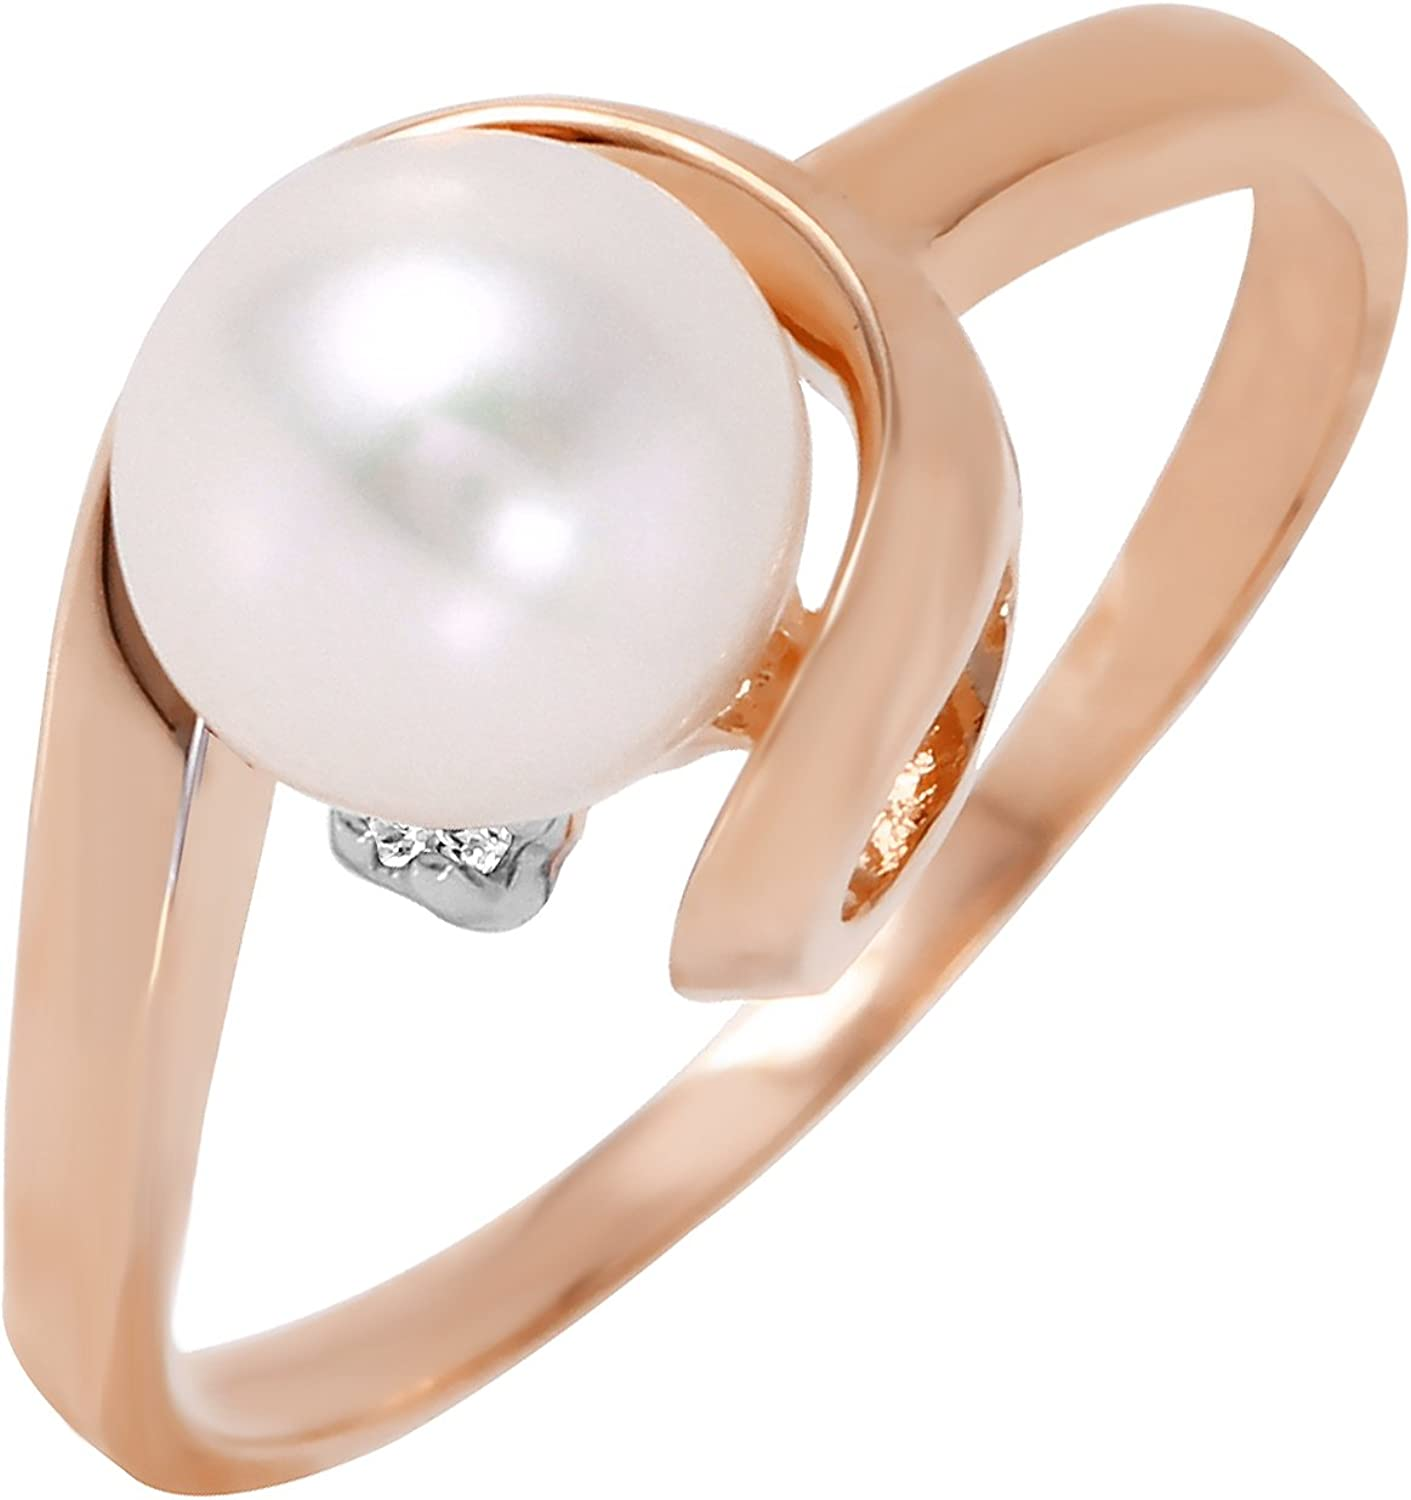 14k Solid Yellow Gold 7.5 mm Freshwater Cultured Pearl /& CZ Elegant Ring Jewelry